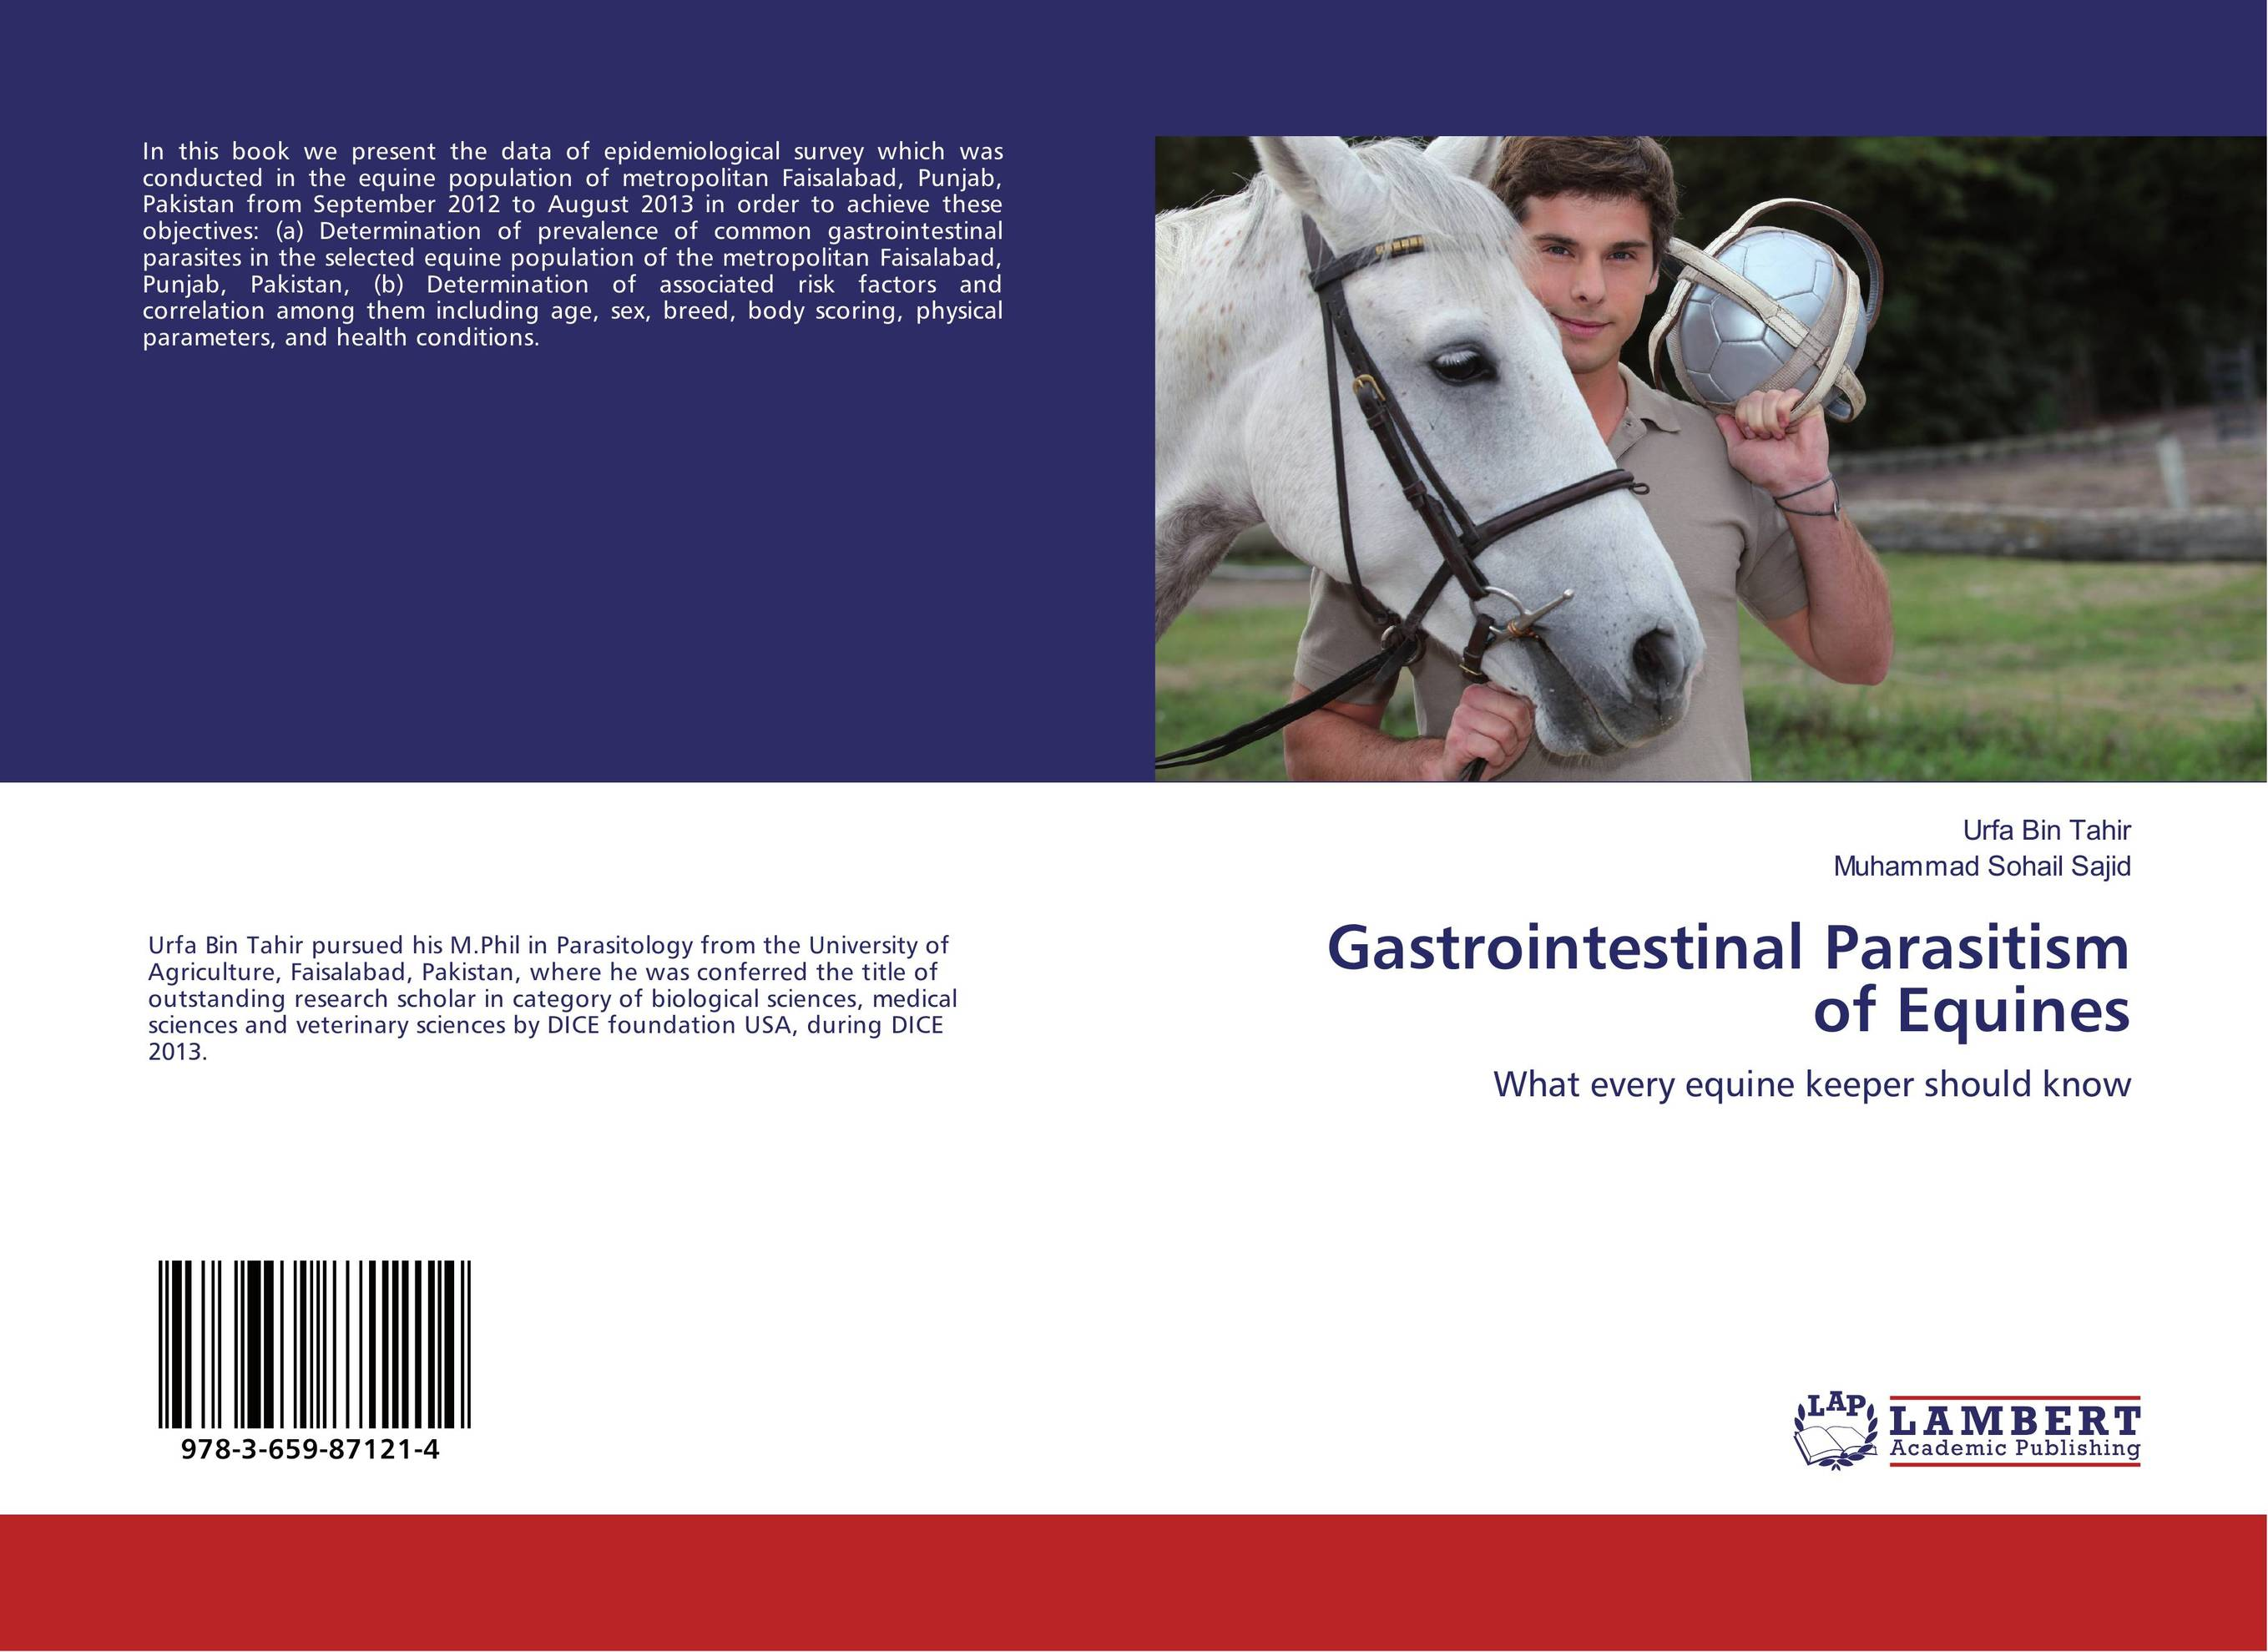 Gastrointestinal Parasitism of Equines epidemiological study on the functional gastrointestinal disorders